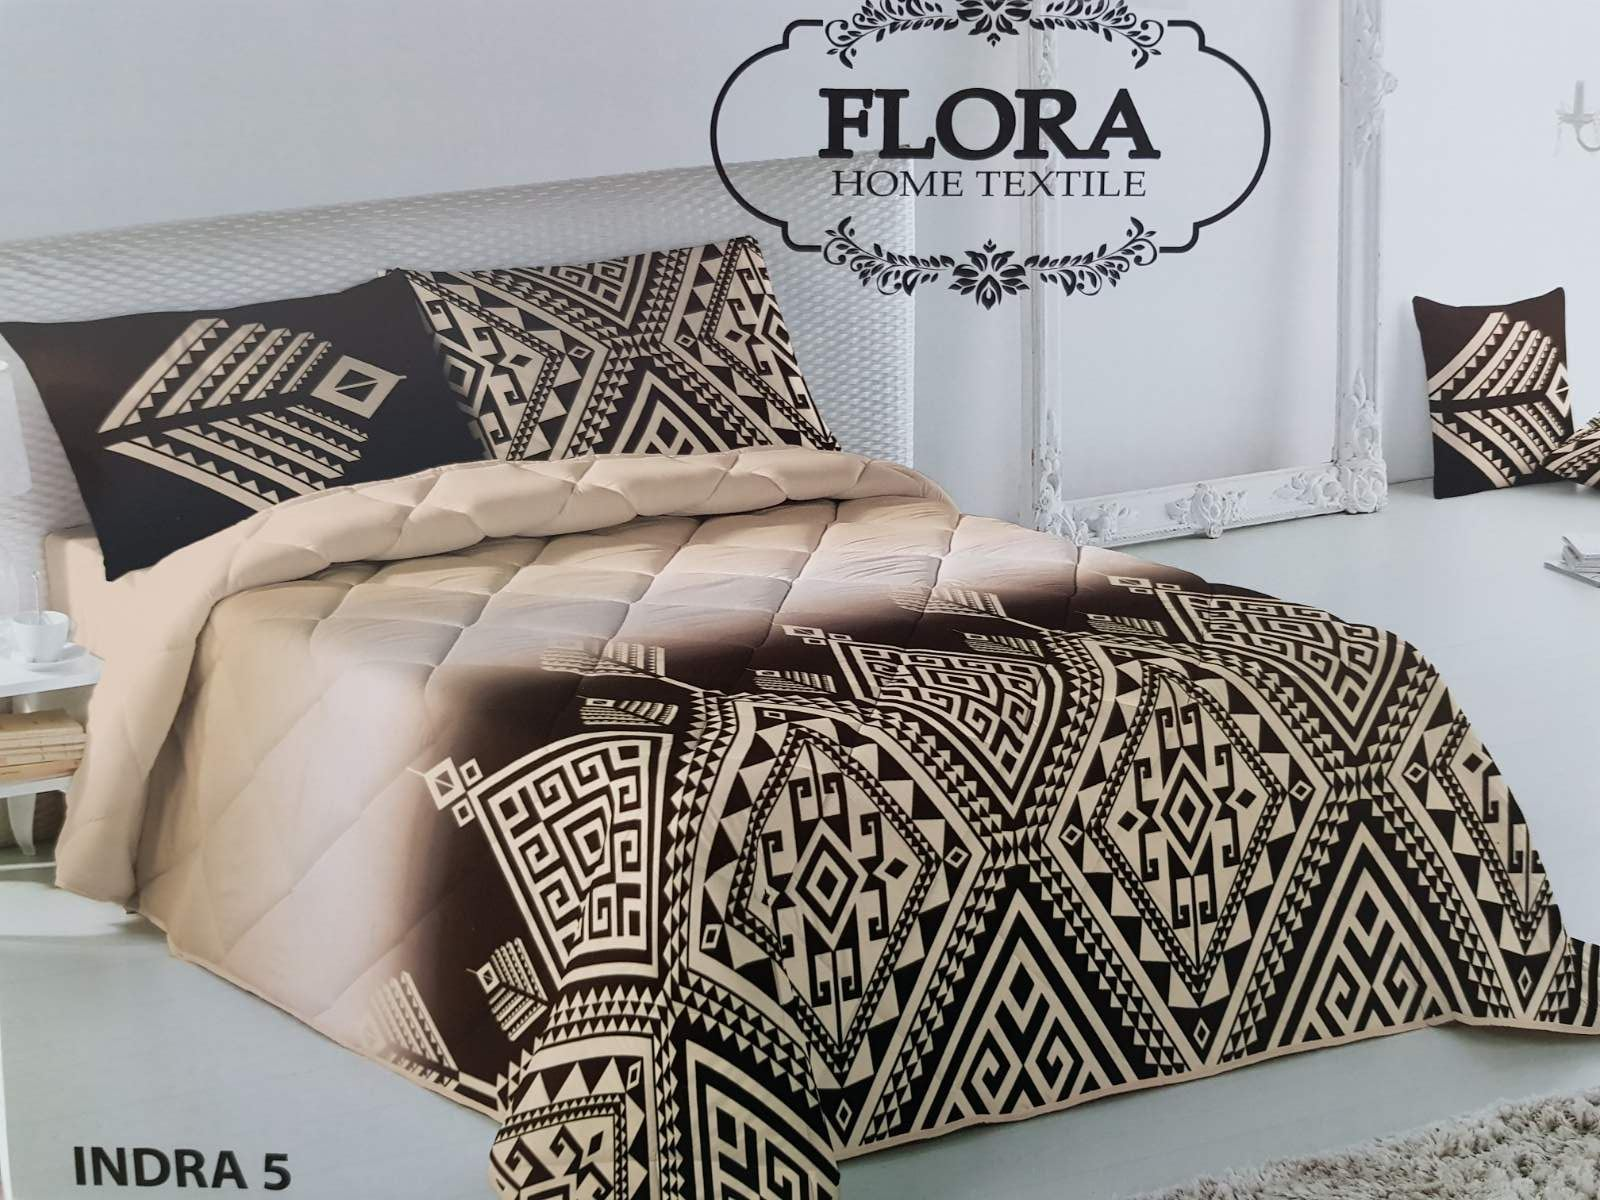 Couette Flora 2 Places - Indra 5 - 240x260